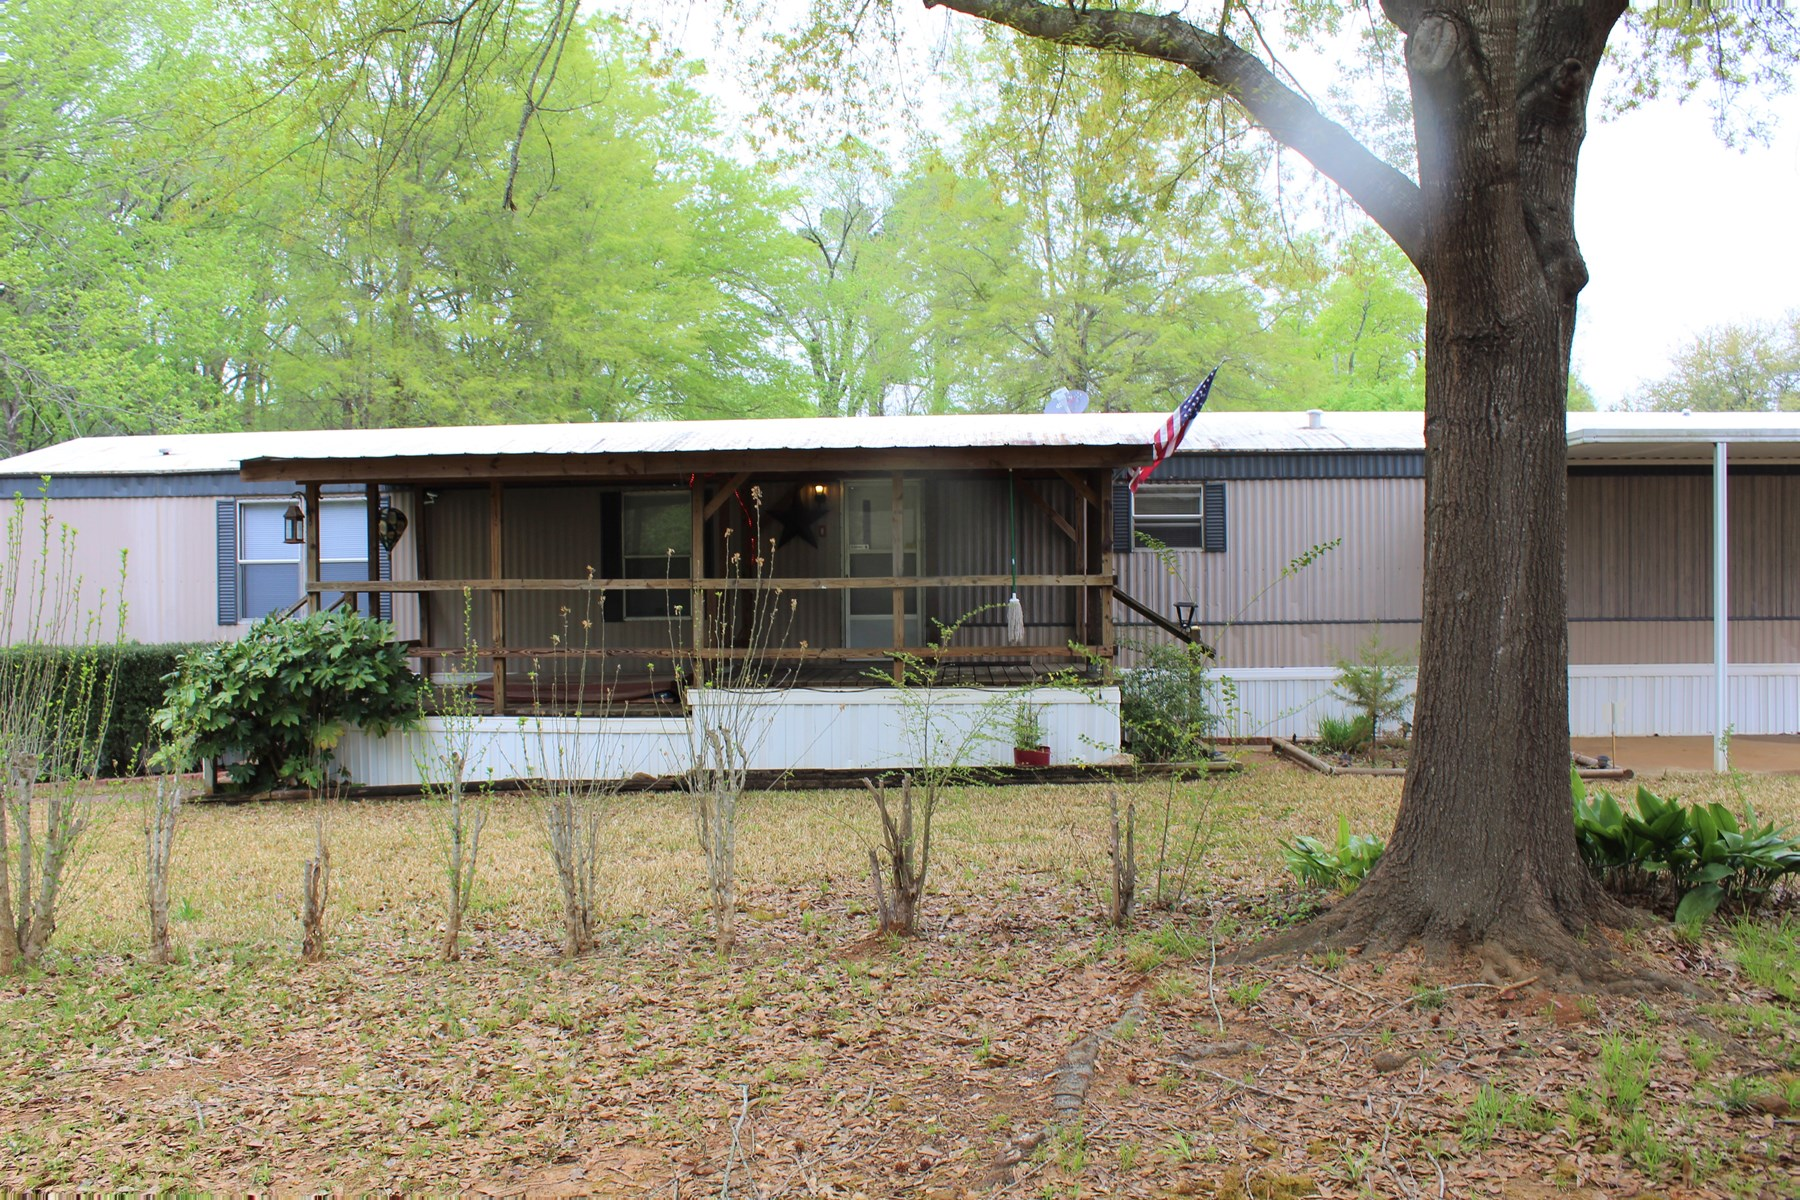 Mobile home for sale Longview, TX Lakeport area